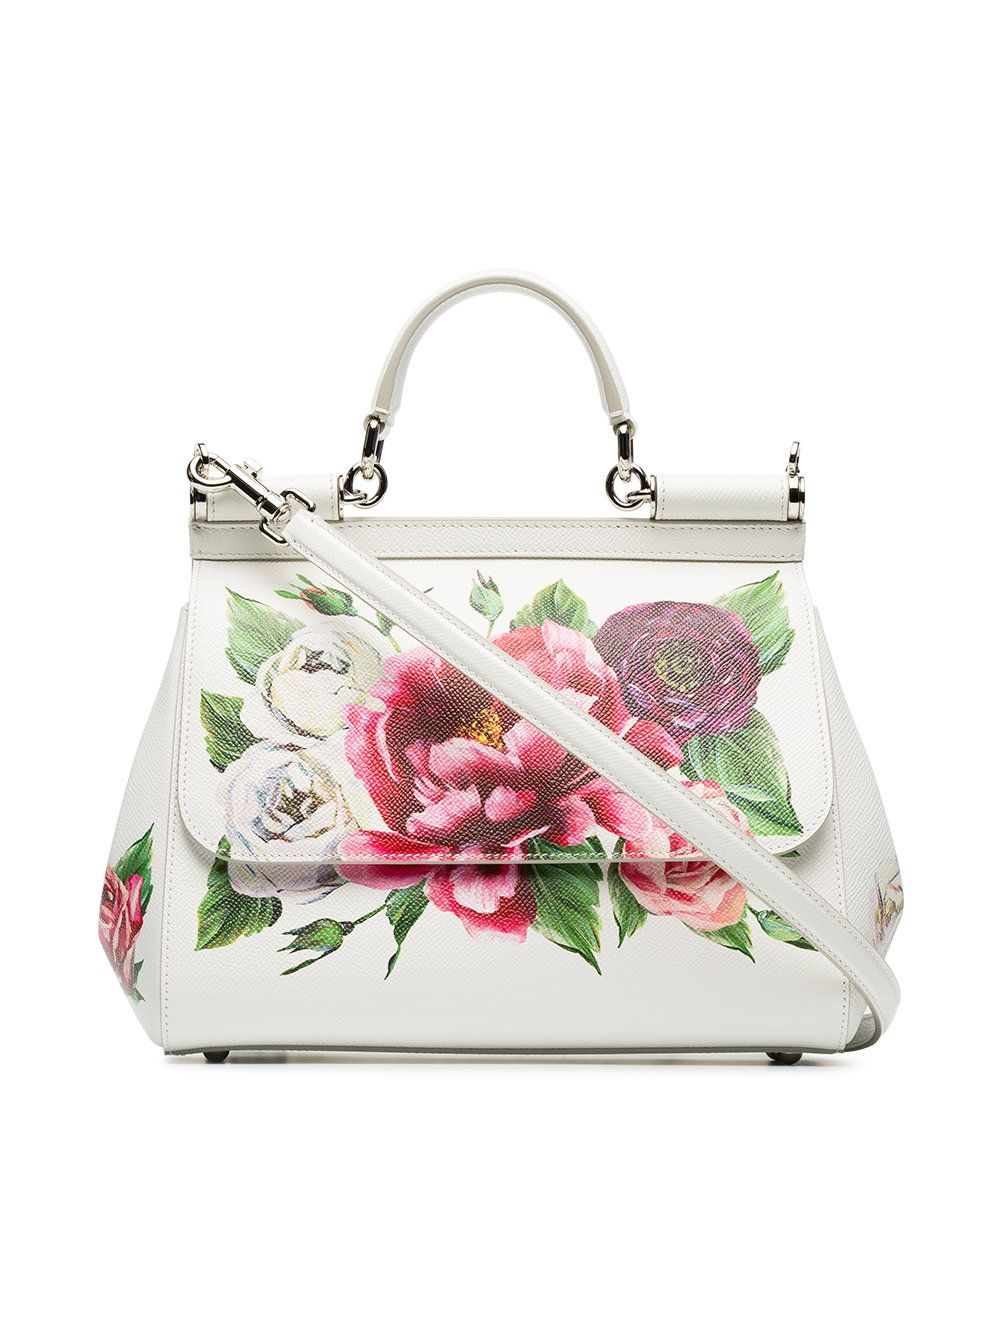 15e11d9a0 Dolce & Gabbana white, red and green sicily rose print leather handbag